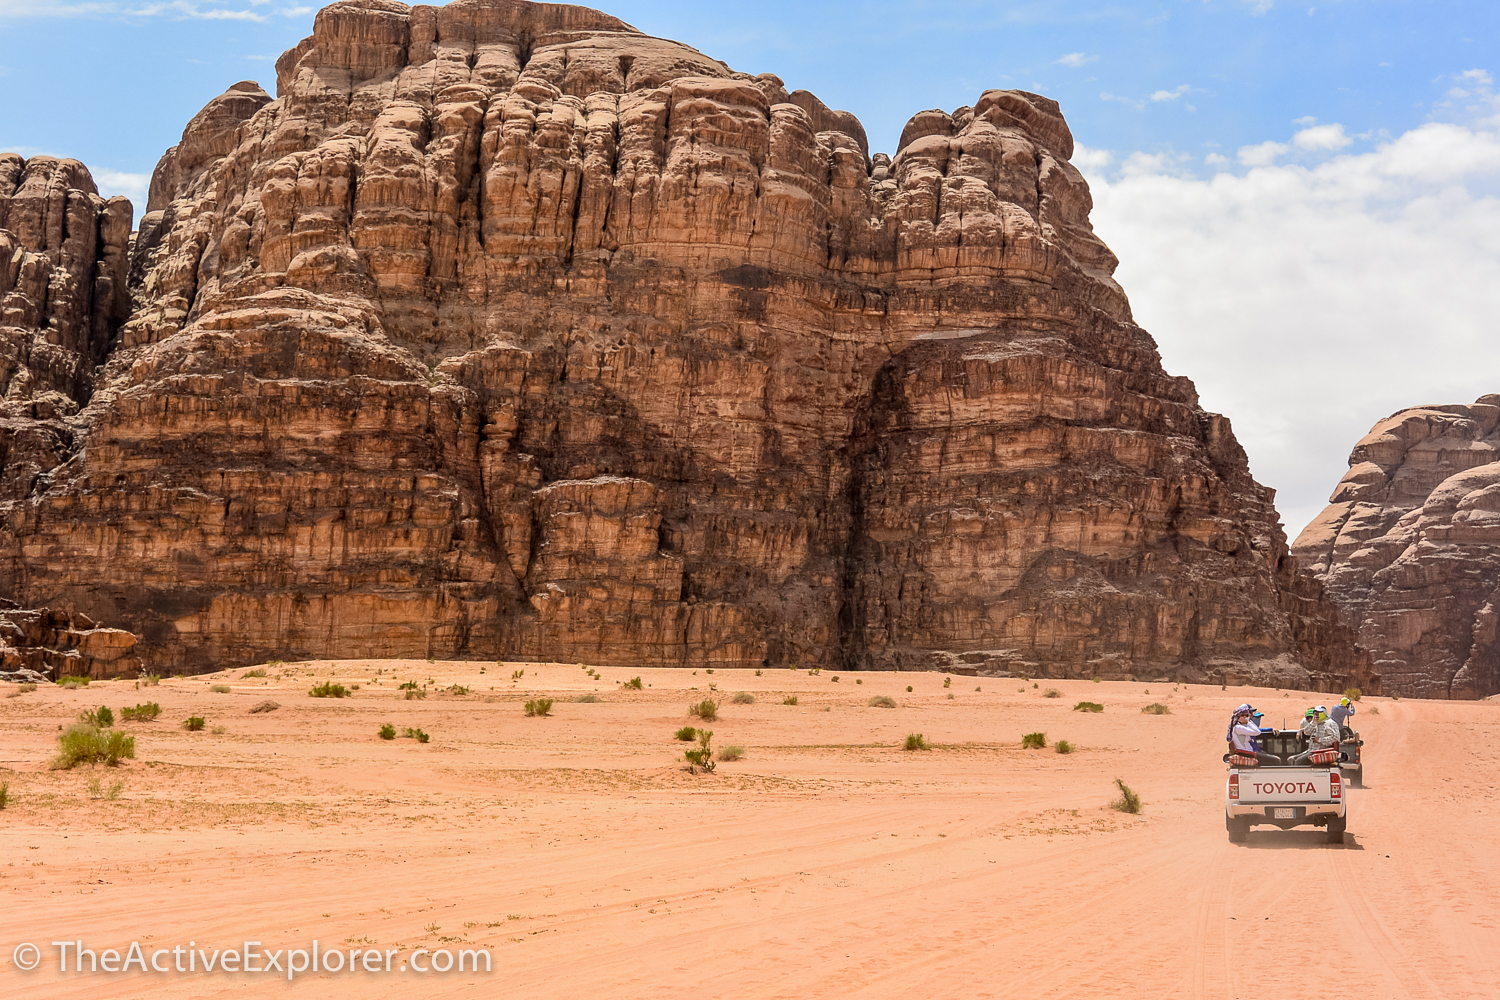 Riding to camp in Wadi Rum